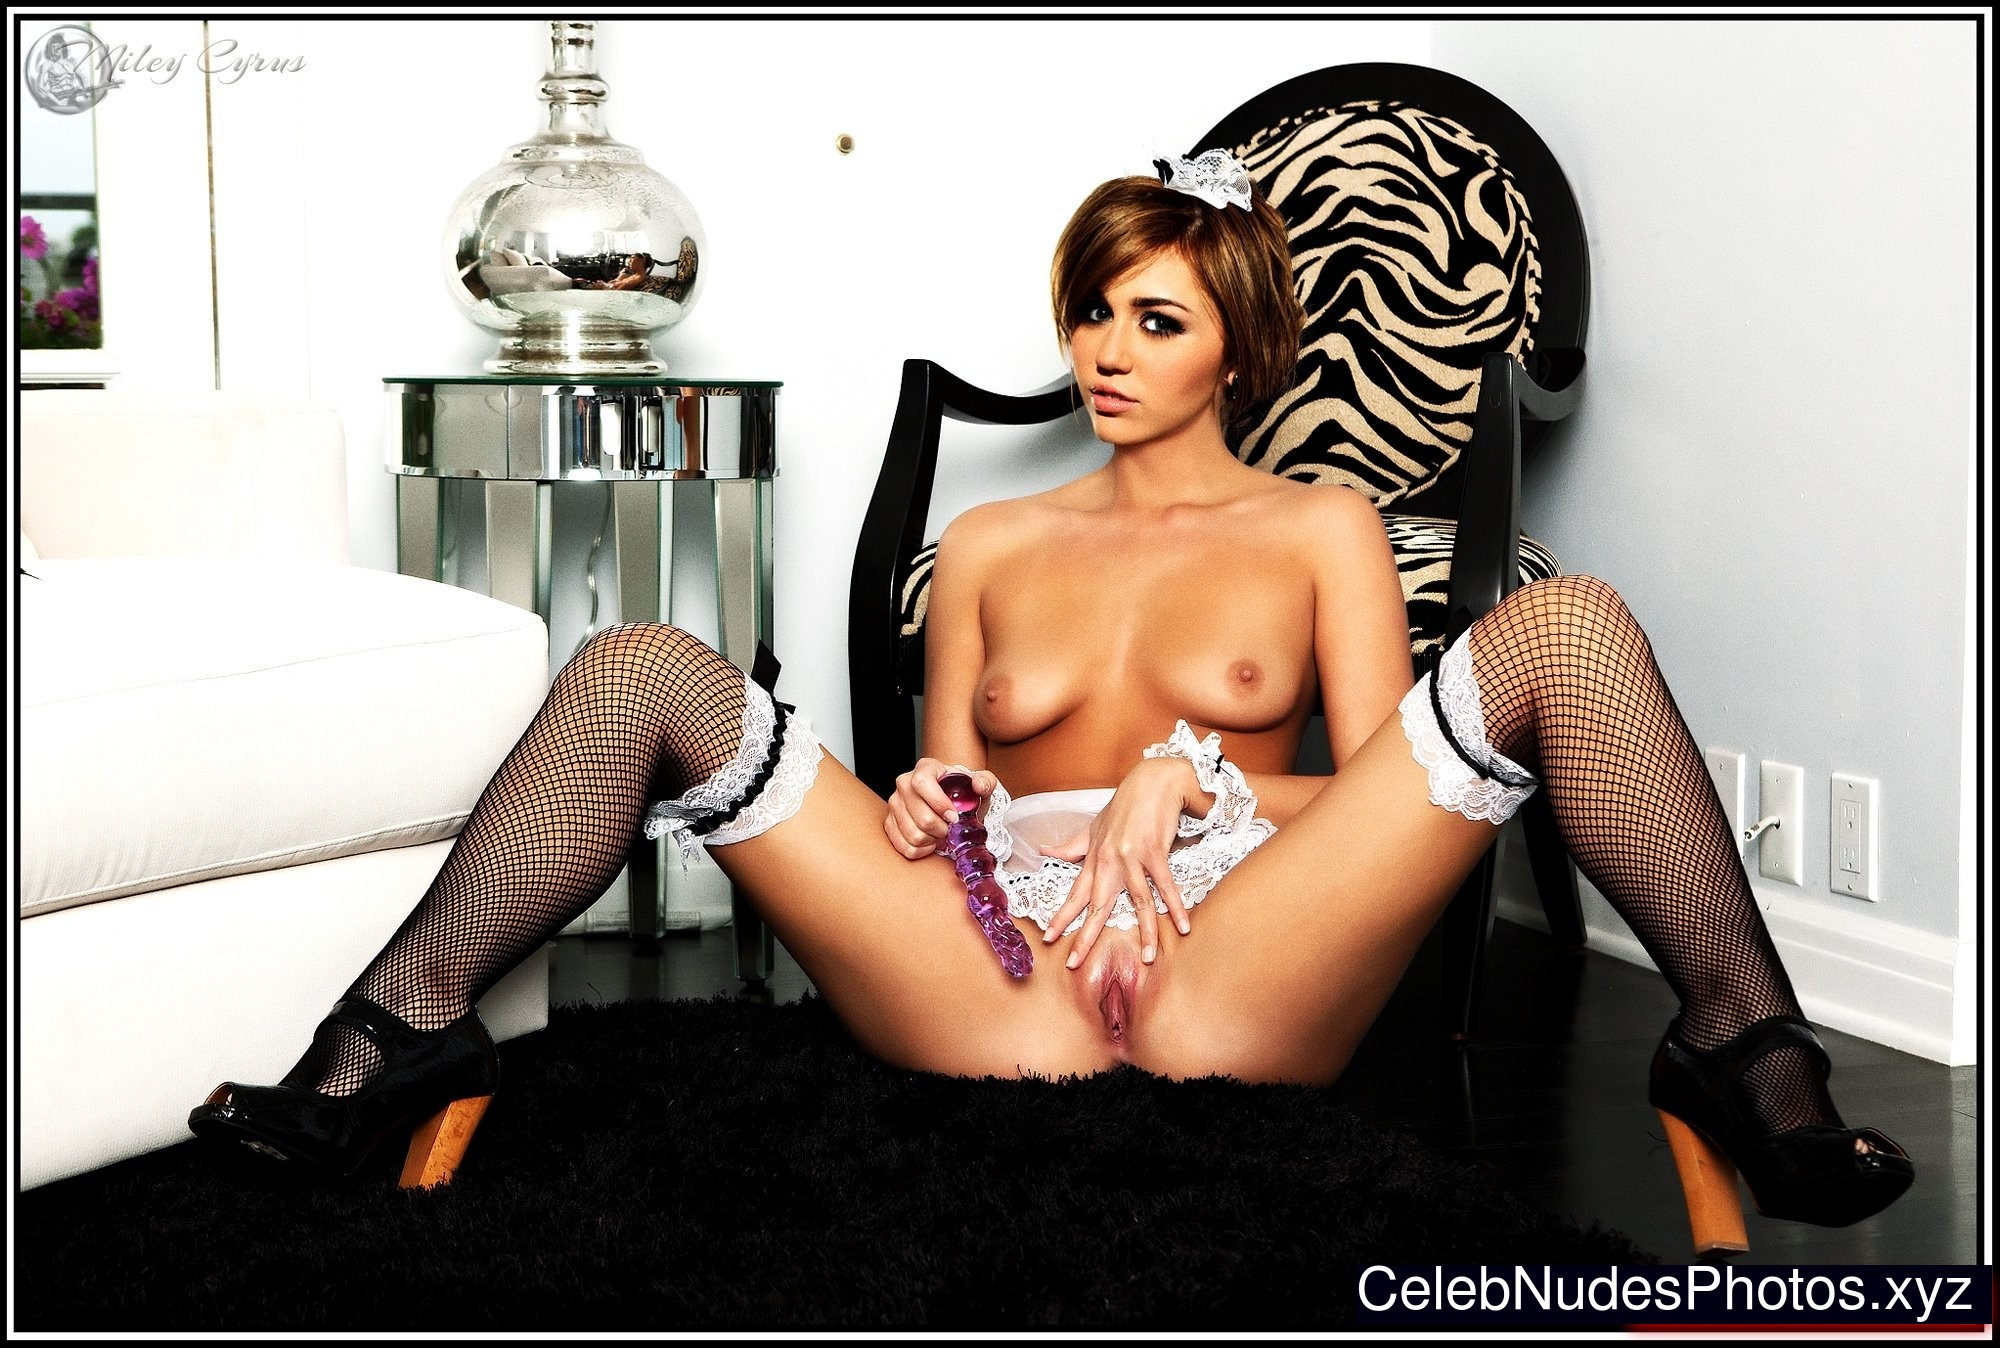 Miley Cyrus naked celebrity pics